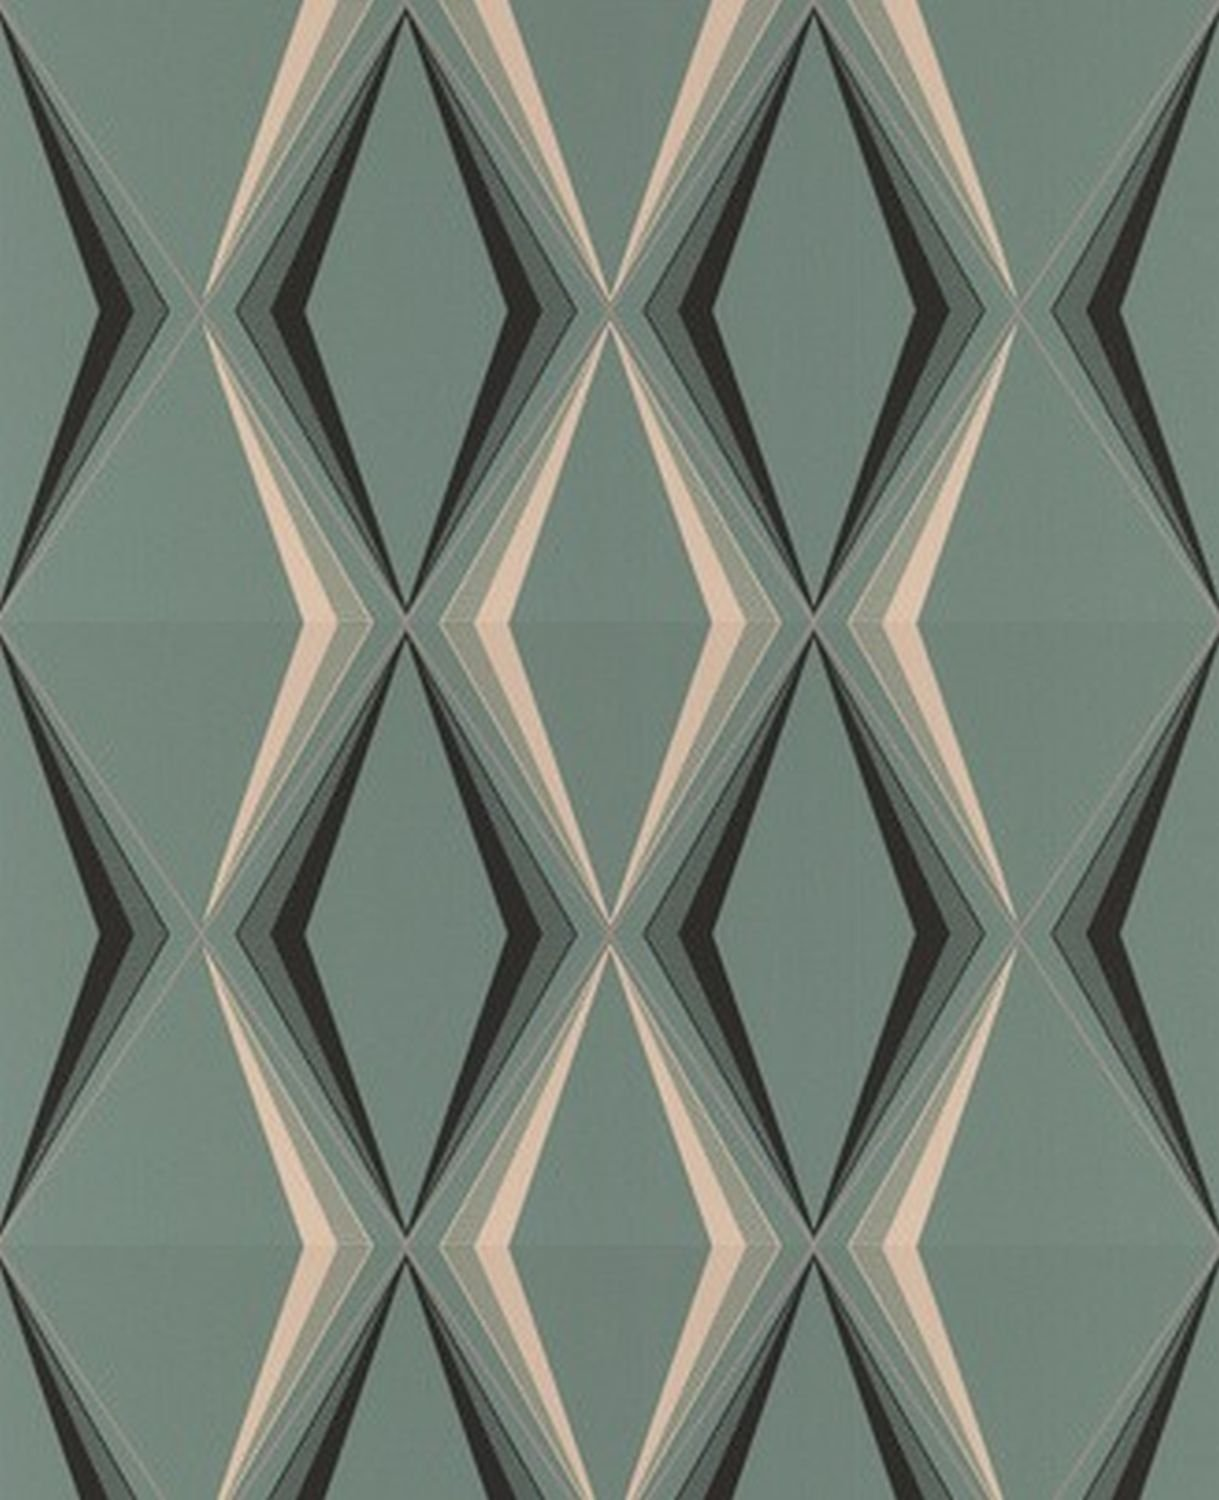 Graham Brown Hemingway 50 254 Paper Wallpaper Deco Diamond Design Amazoncouk DIY Tools